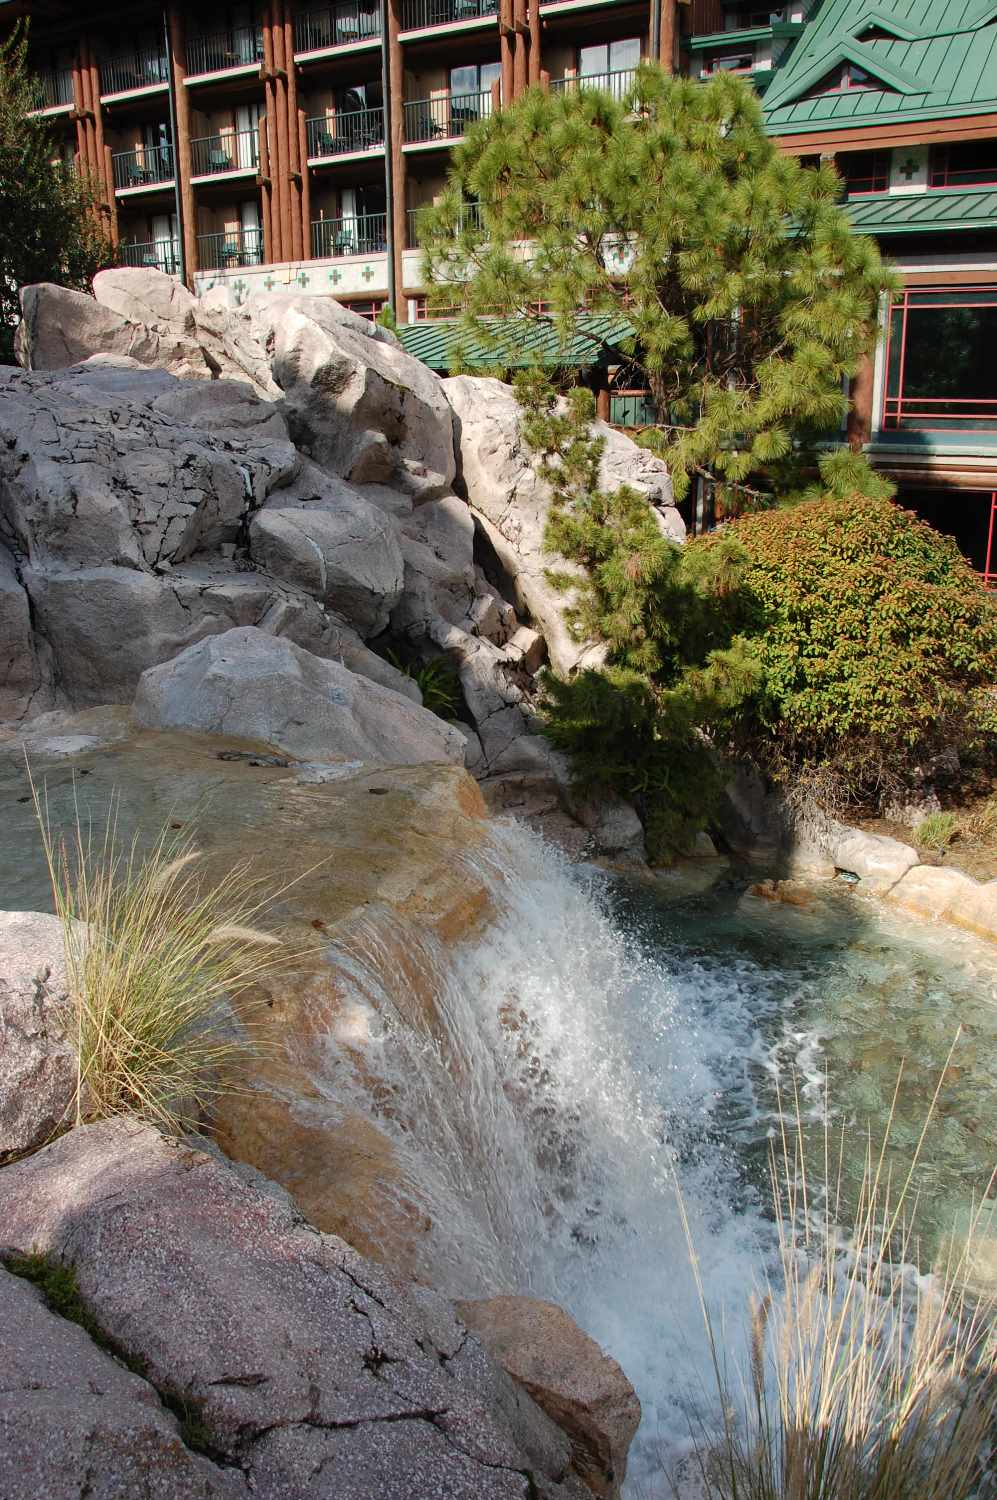 Disney's Wilderness Lodge Resort has a natural look and feel that is inspired by the magnificent National Parks in America.